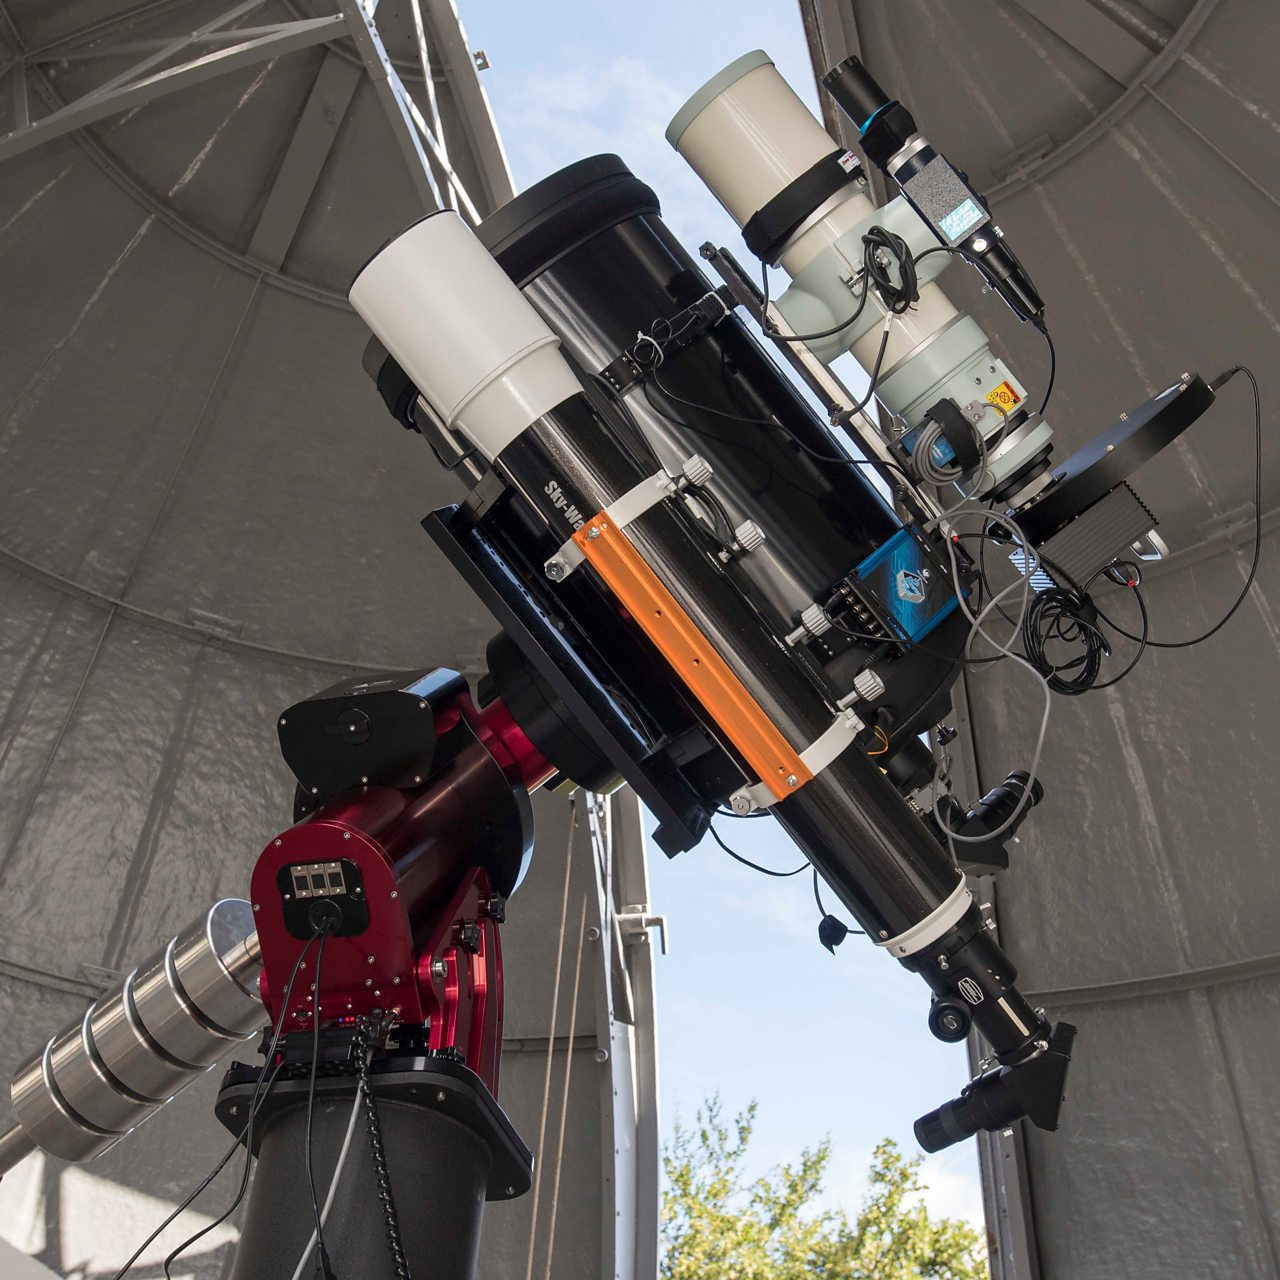 Photograph of the new Annie Maunder Astrographic Telescope at the Royal Observatory Greenwich National Maritime Museum London